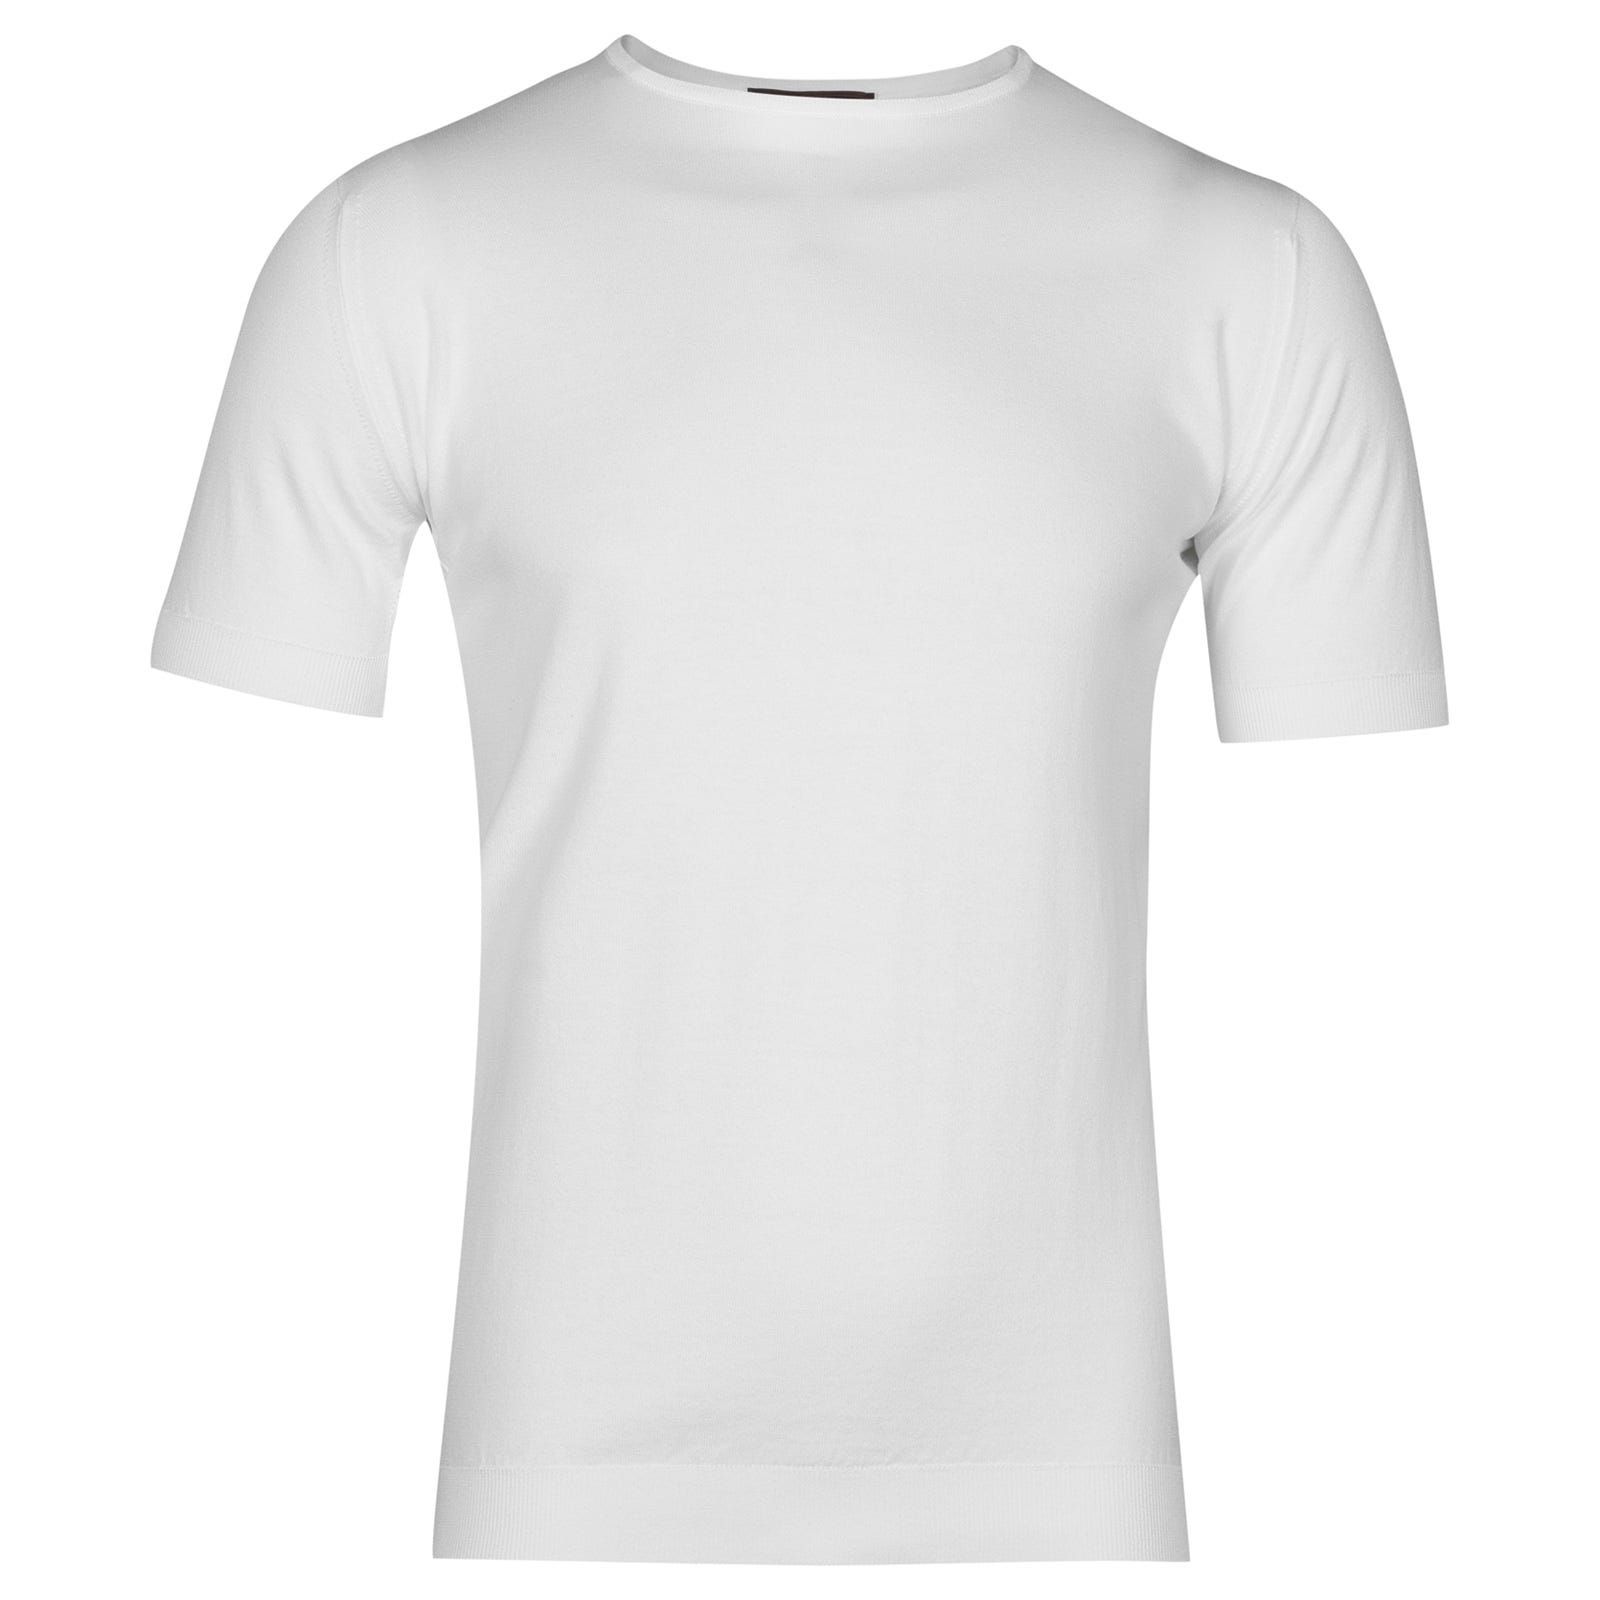 John Smedley belden Sea Island Cotton T-shirt in white-M